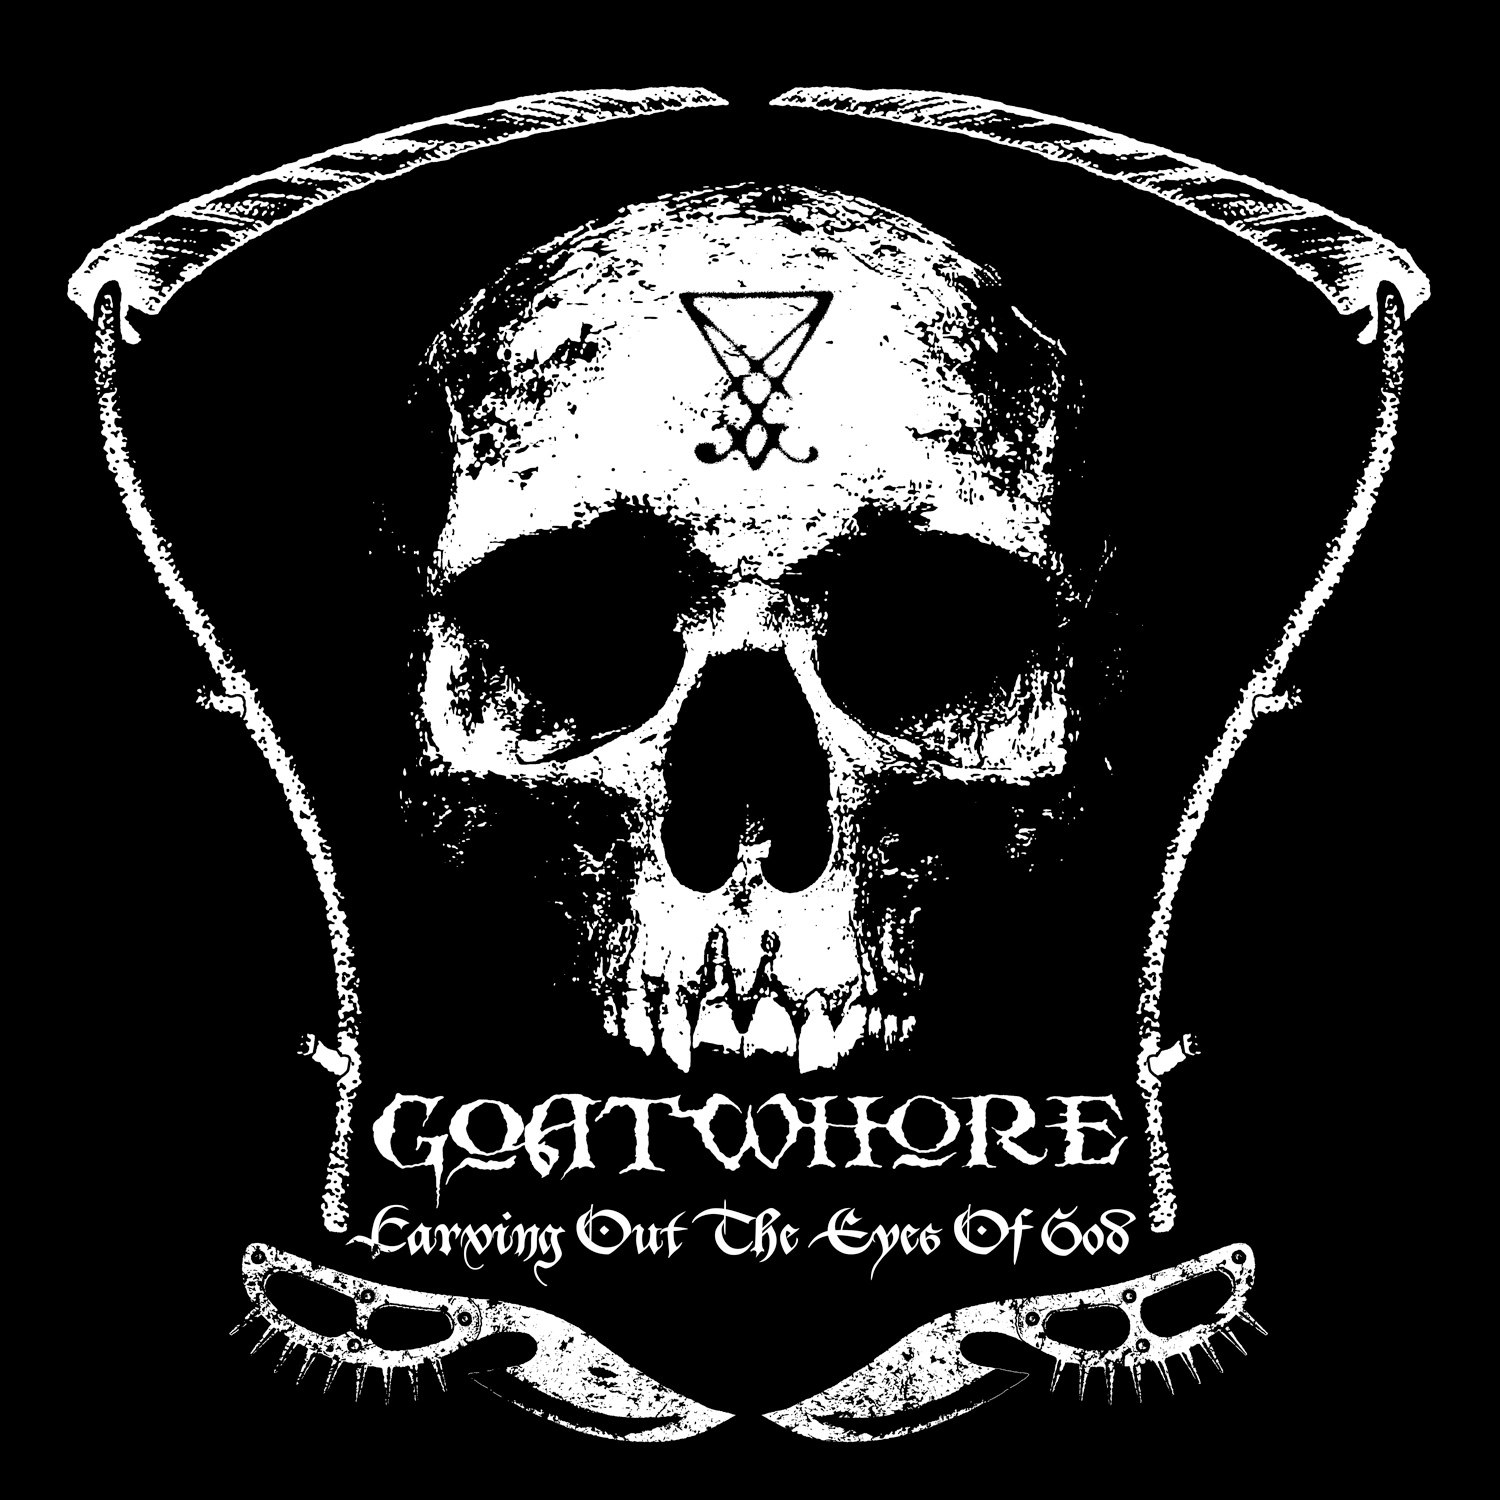 Goatwhore - Carving Out the Eyes of God